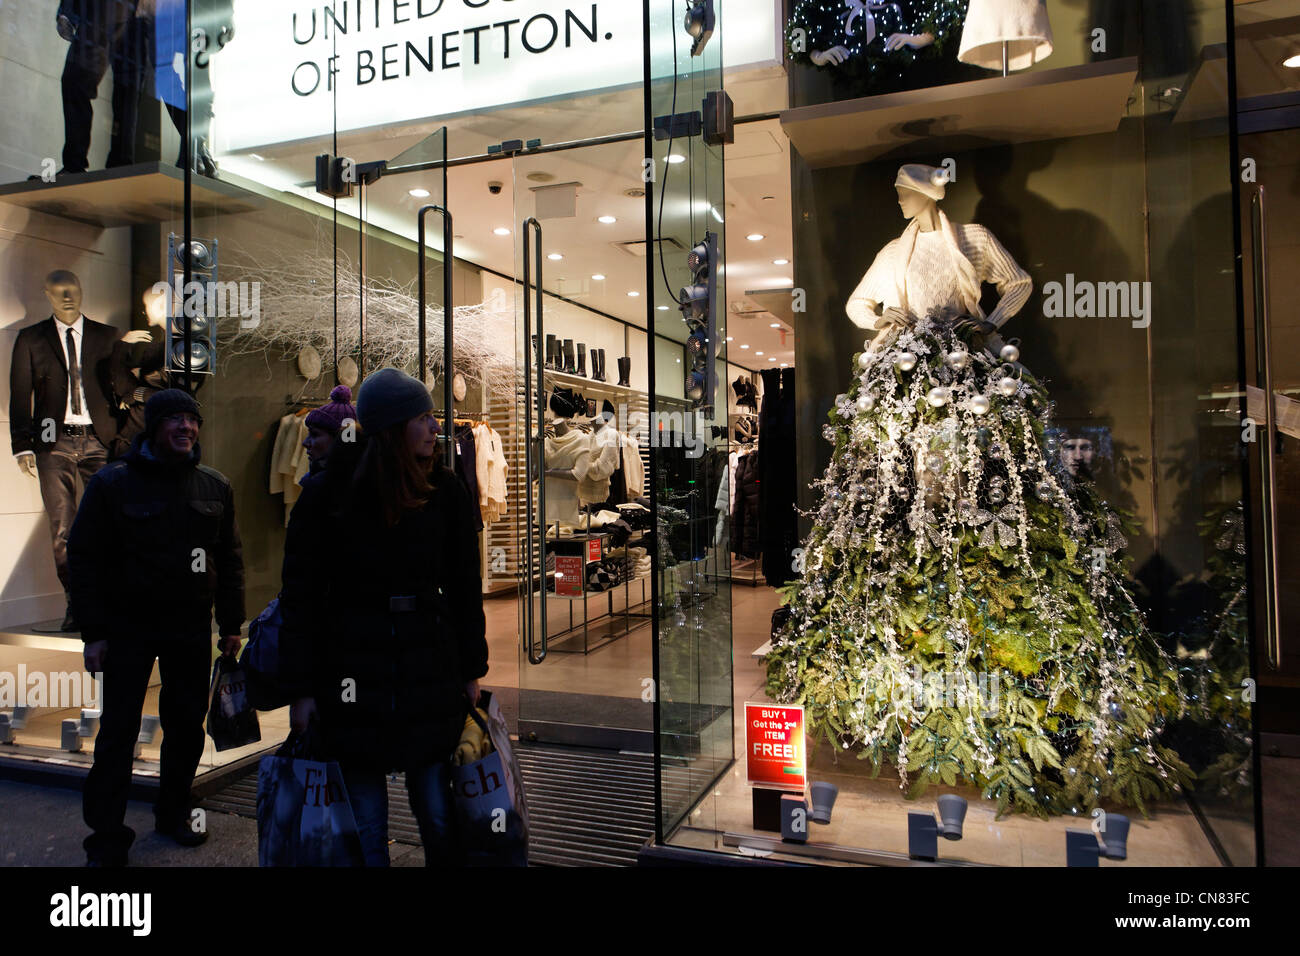 United States, New York City, Manhattan, Midtown, fifth Avenue, Christmas shop window - Stock Image